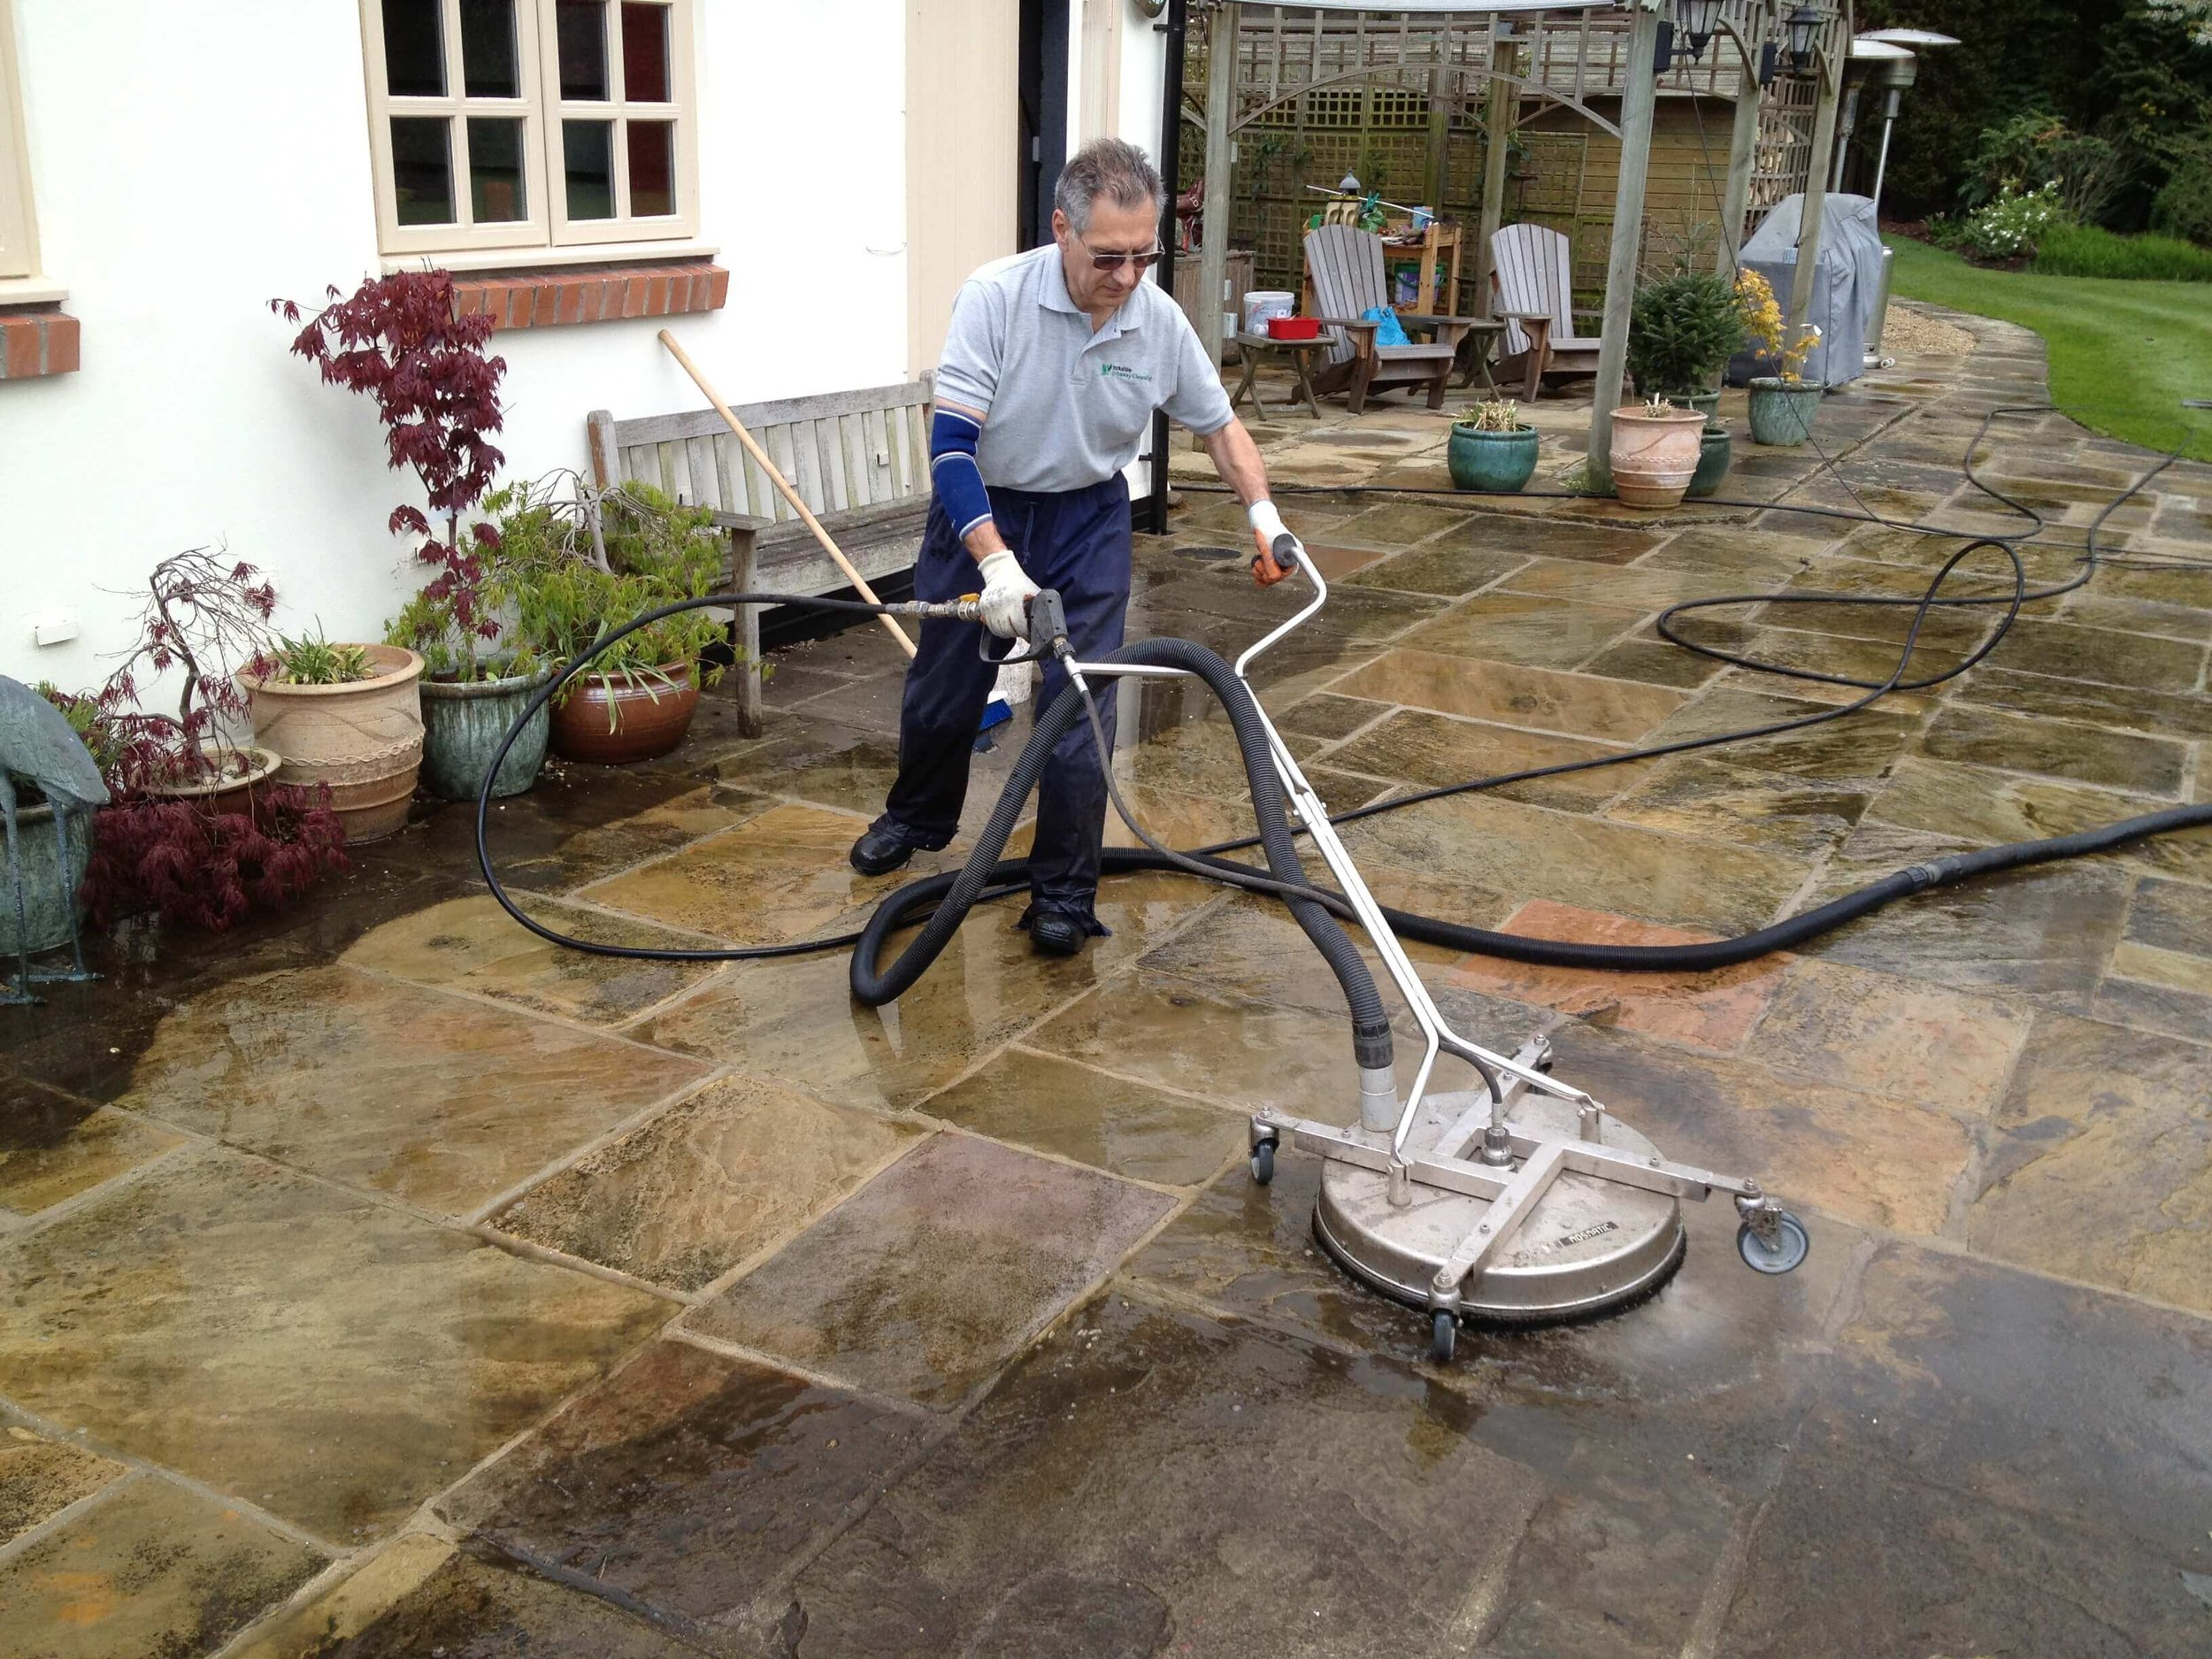 With state of the art pressure washing machines we can restore your patio and hard surfaces to pristine condition. This large Yorkstone patio area was cleaned near Pontefract LS25.